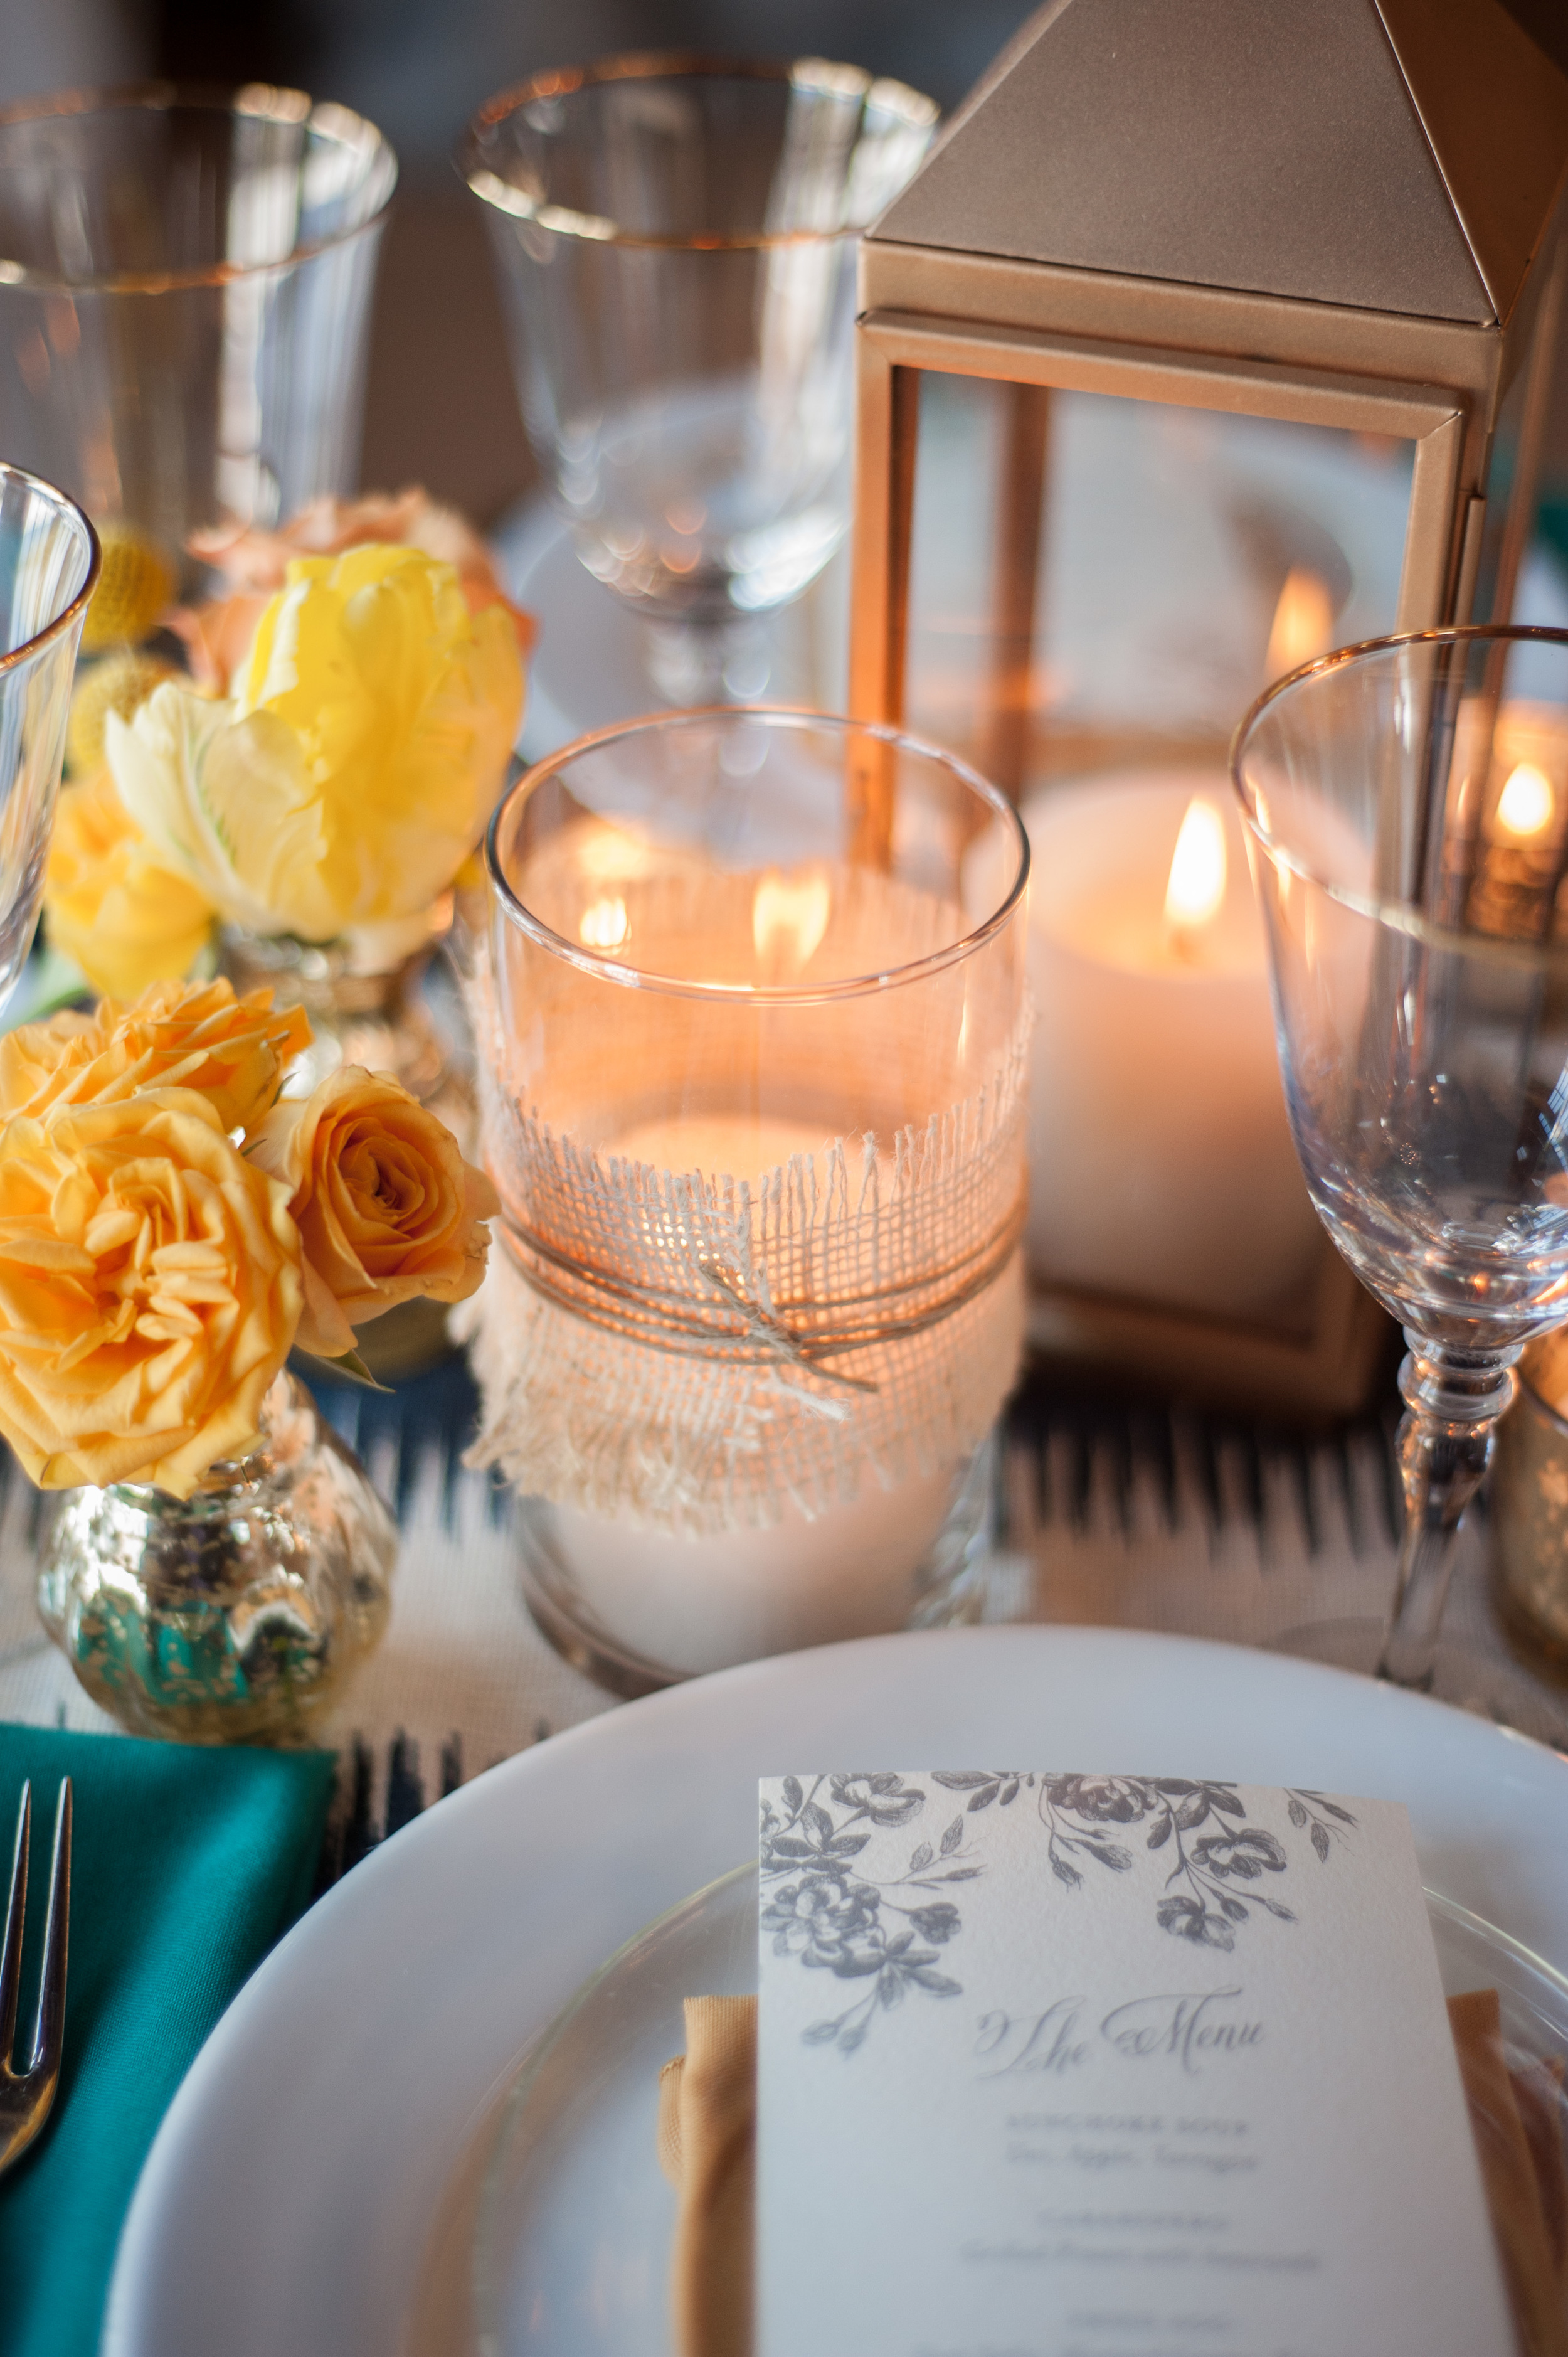 Maine Seasons Events table scape photo by Brea McDonald.jpg